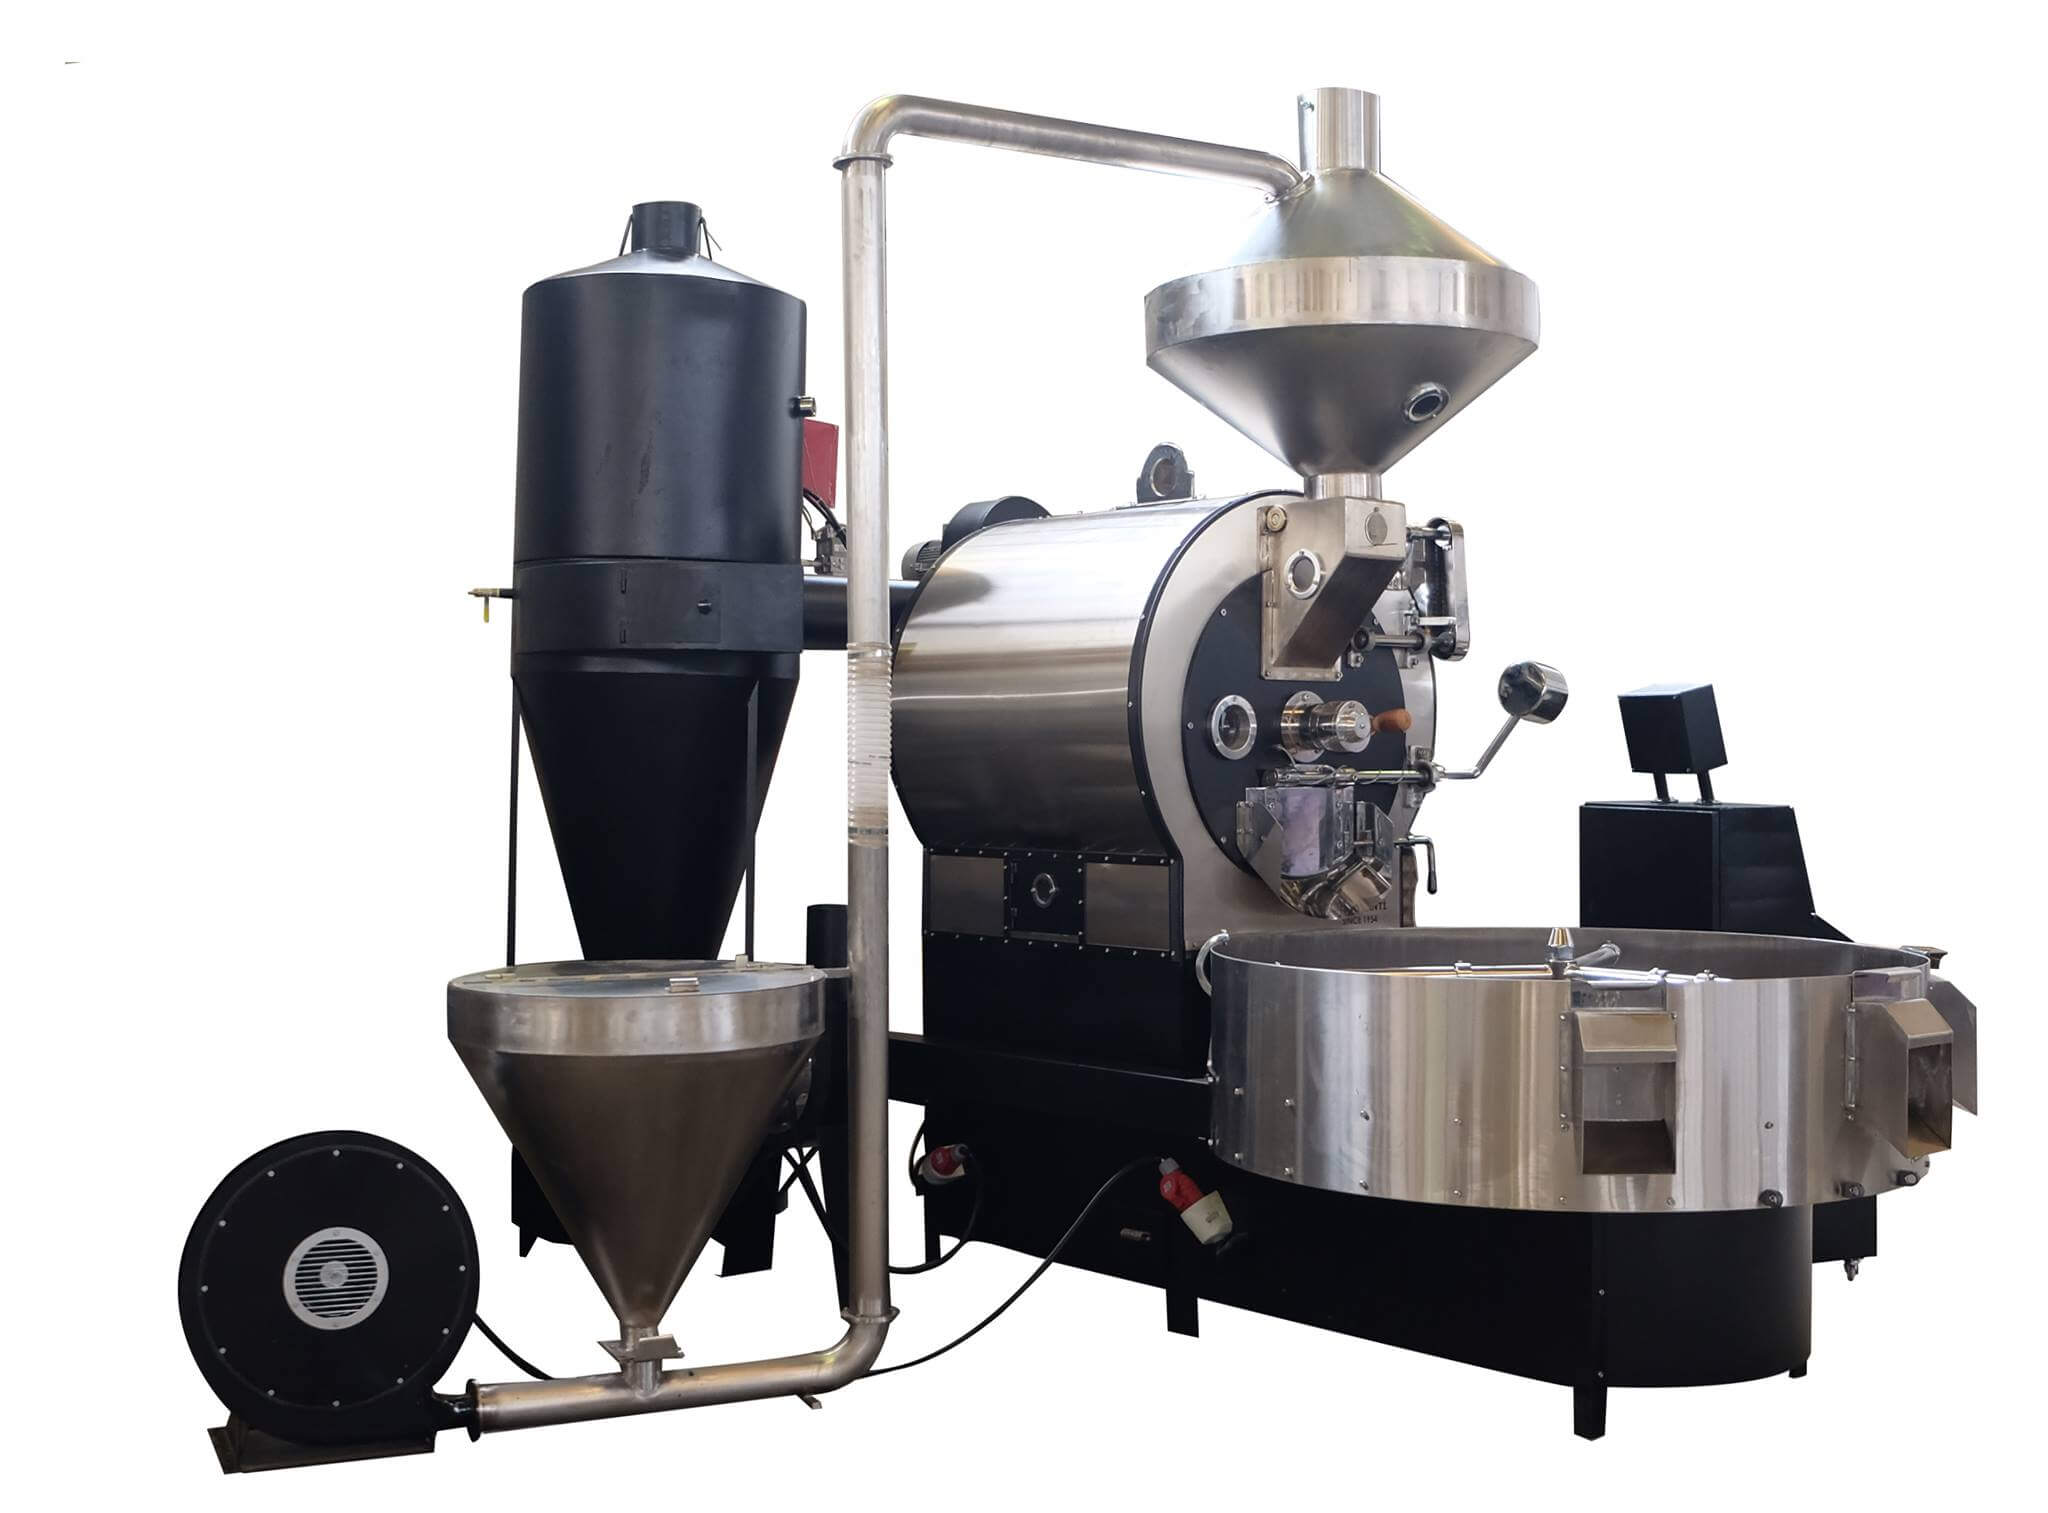 HSRP 60KG Coffee Roasting Machine